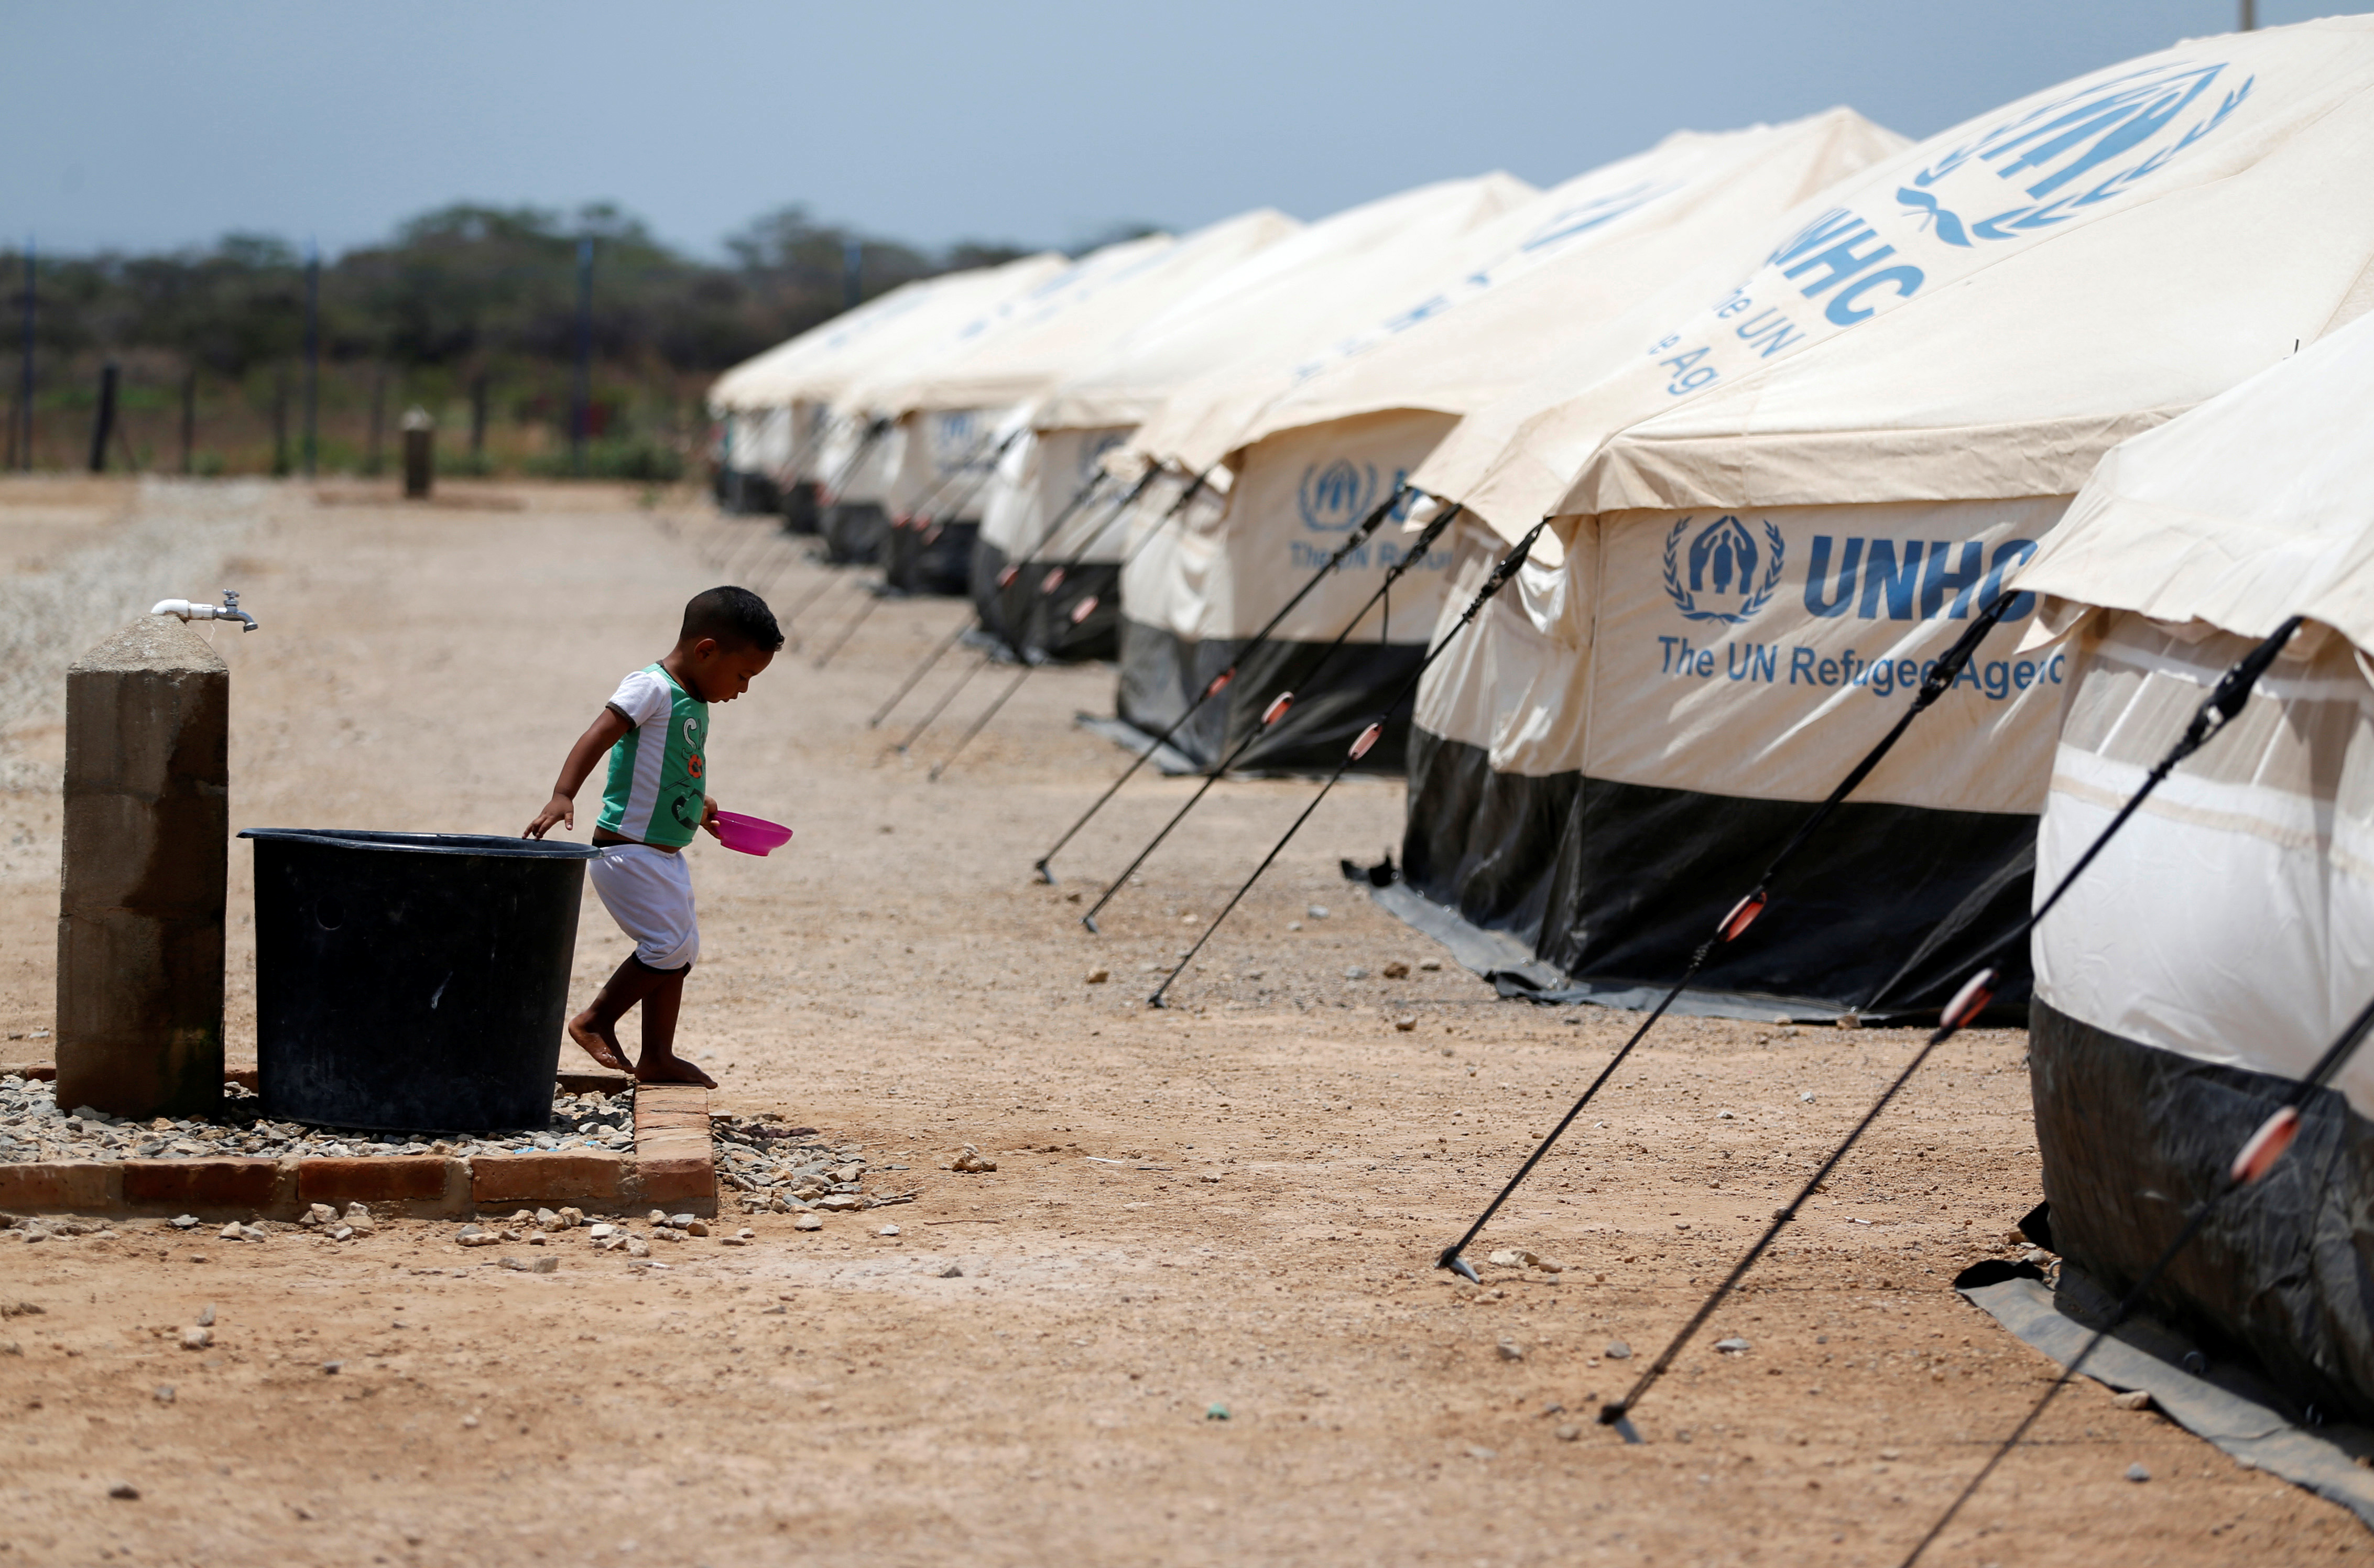 UN Forum to Seek Solutions for World's Displaced